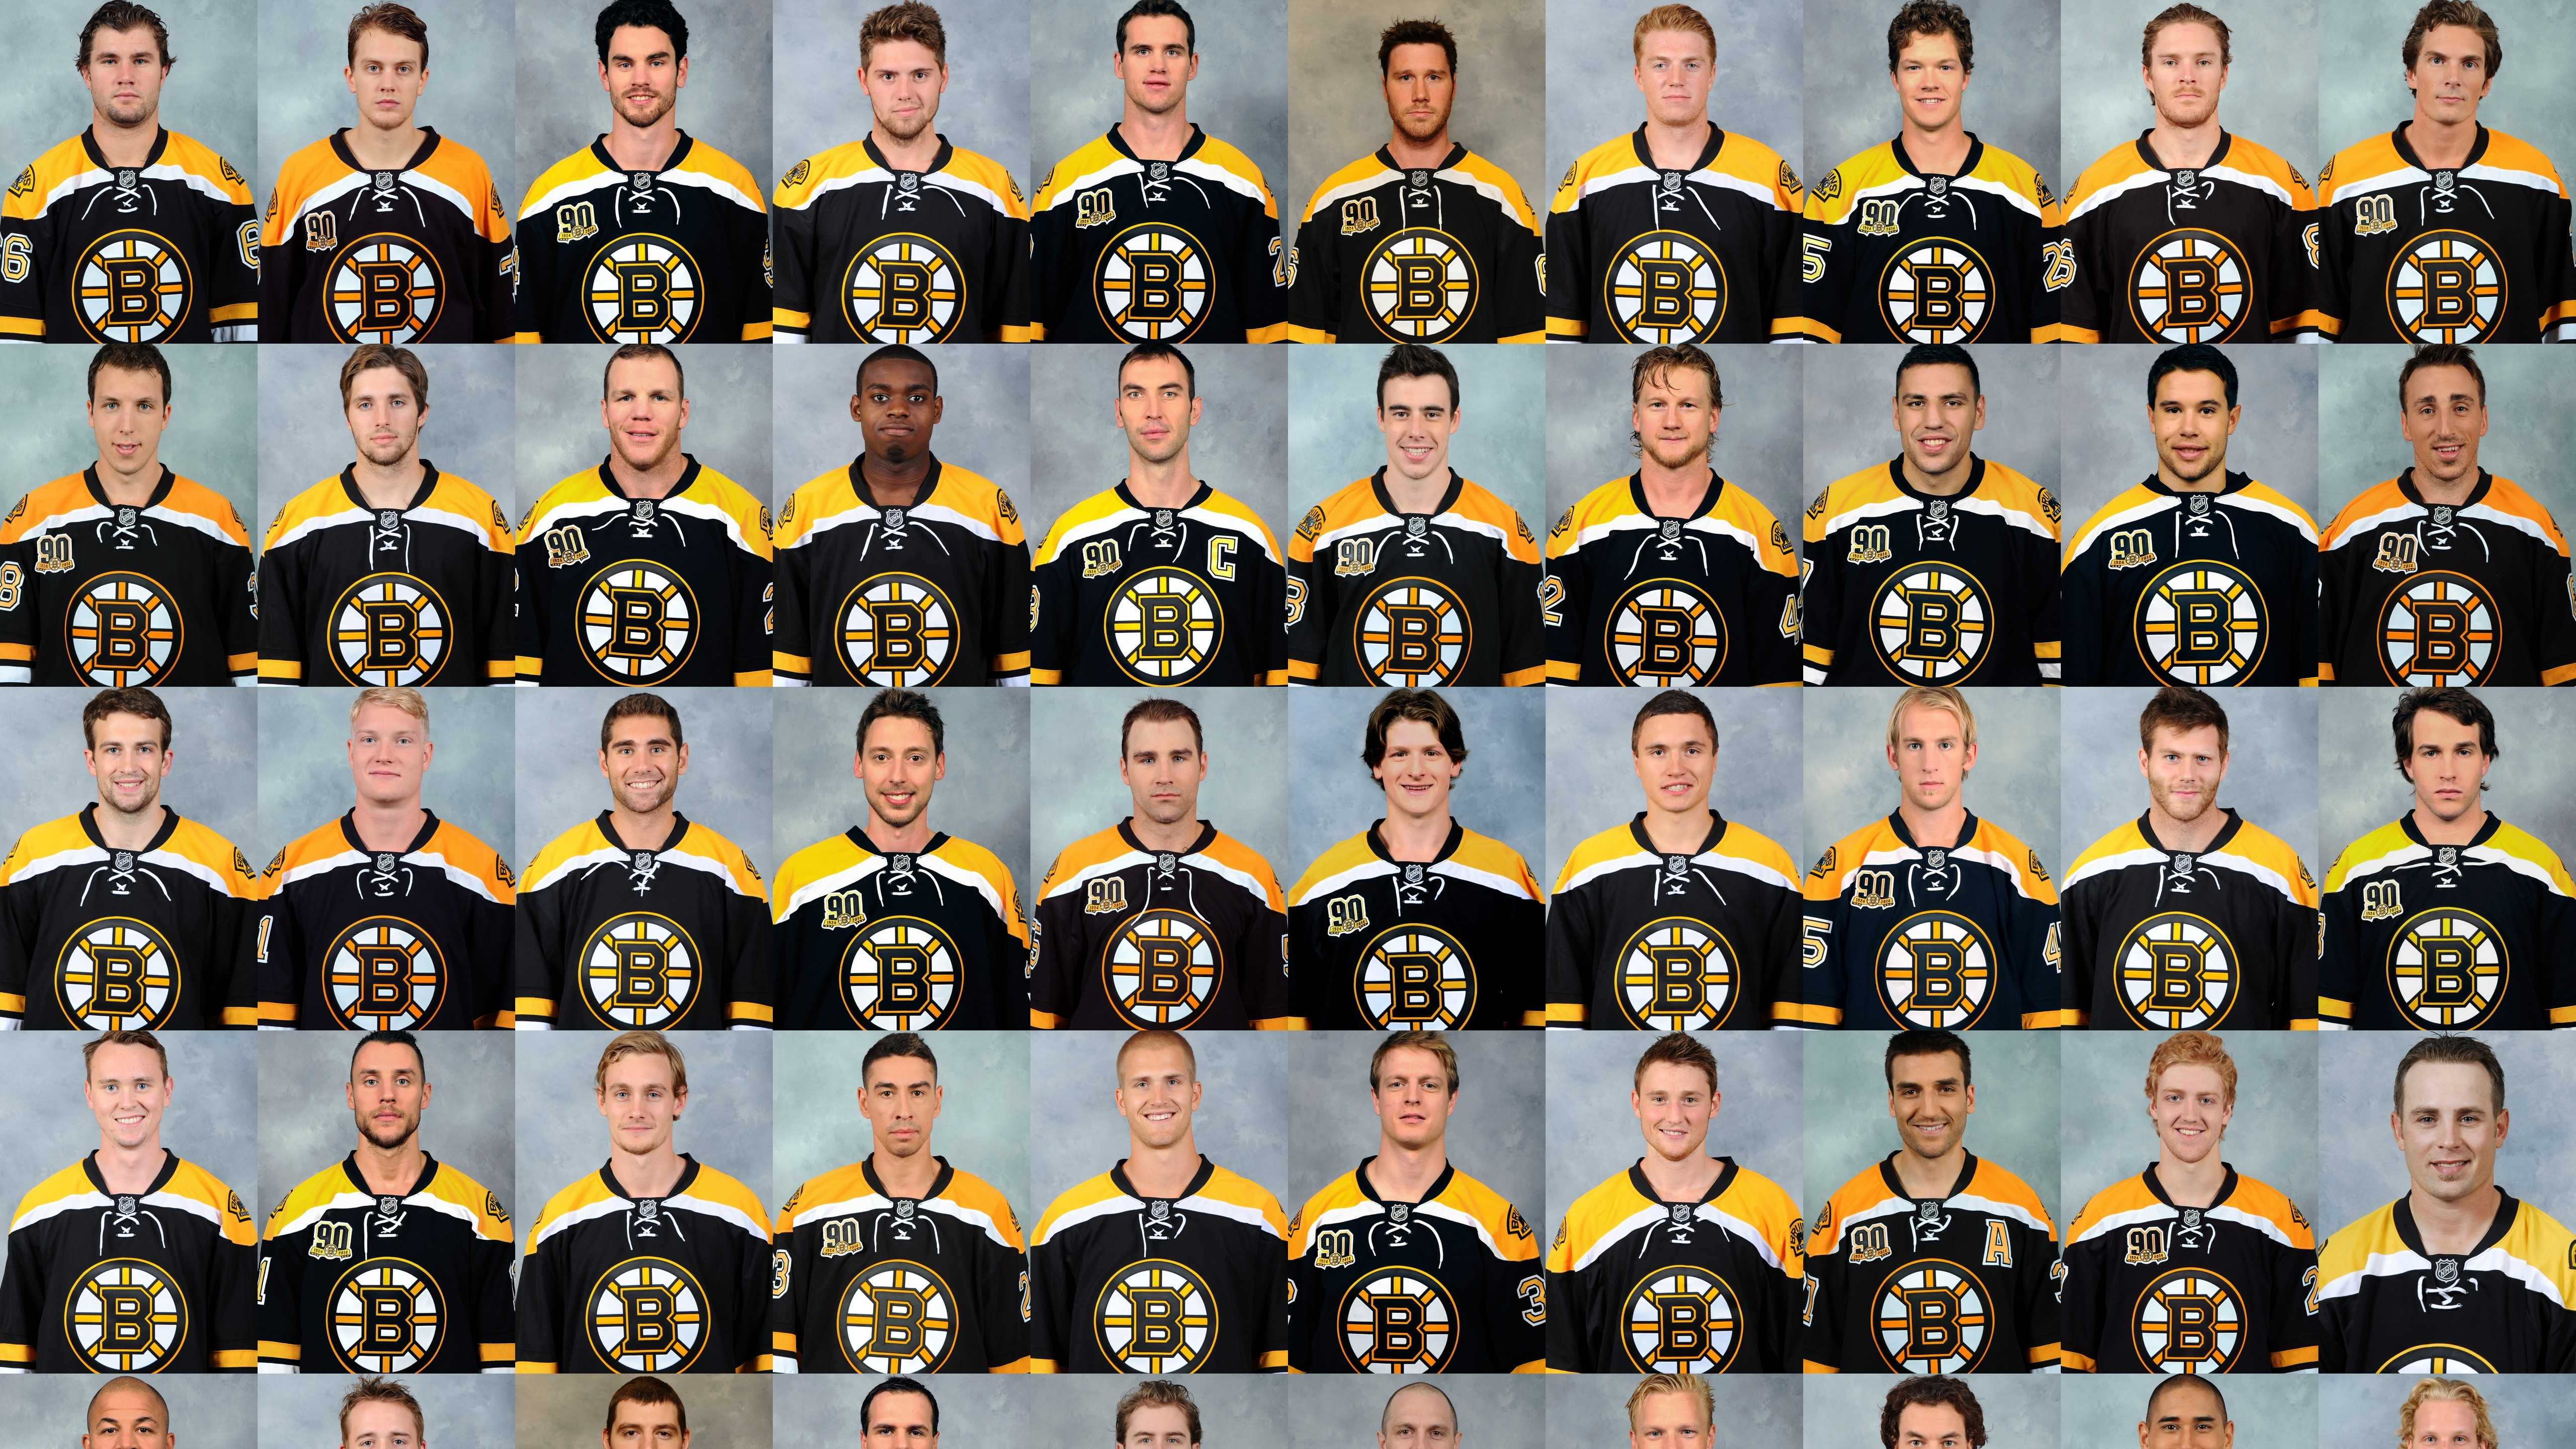 Here's a look at the team roster, and how much each Bruins player makes.